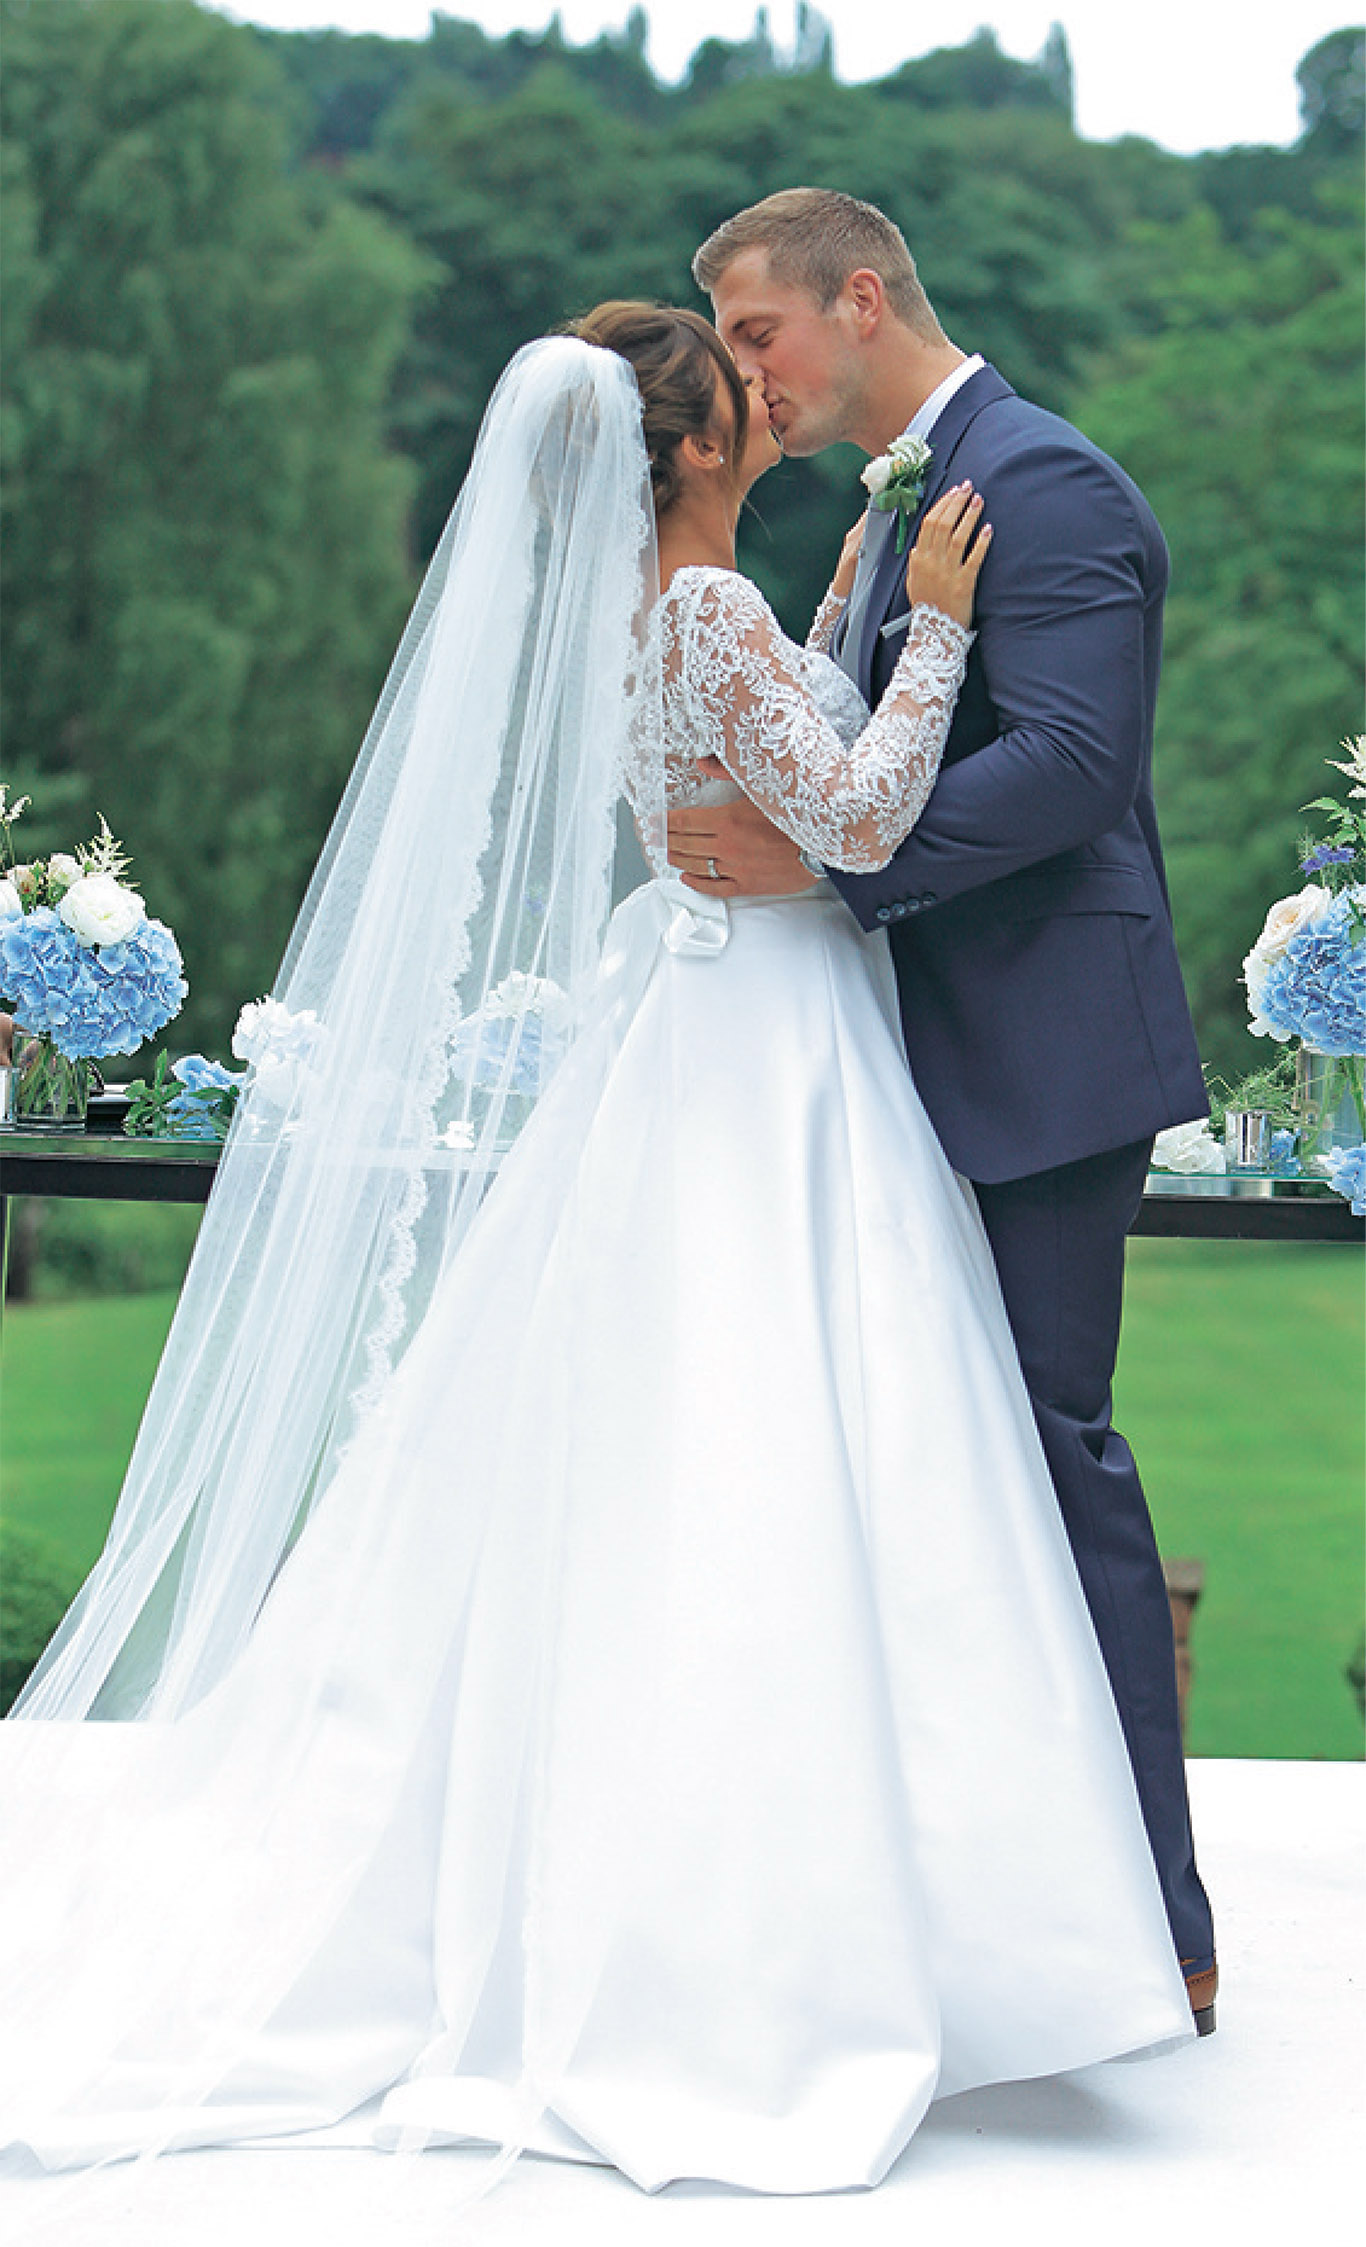 tv-couples-married-in-real-life-jaqueline-joss-dan-osborne-wedding-dresses-by-designer-suzanneneville03